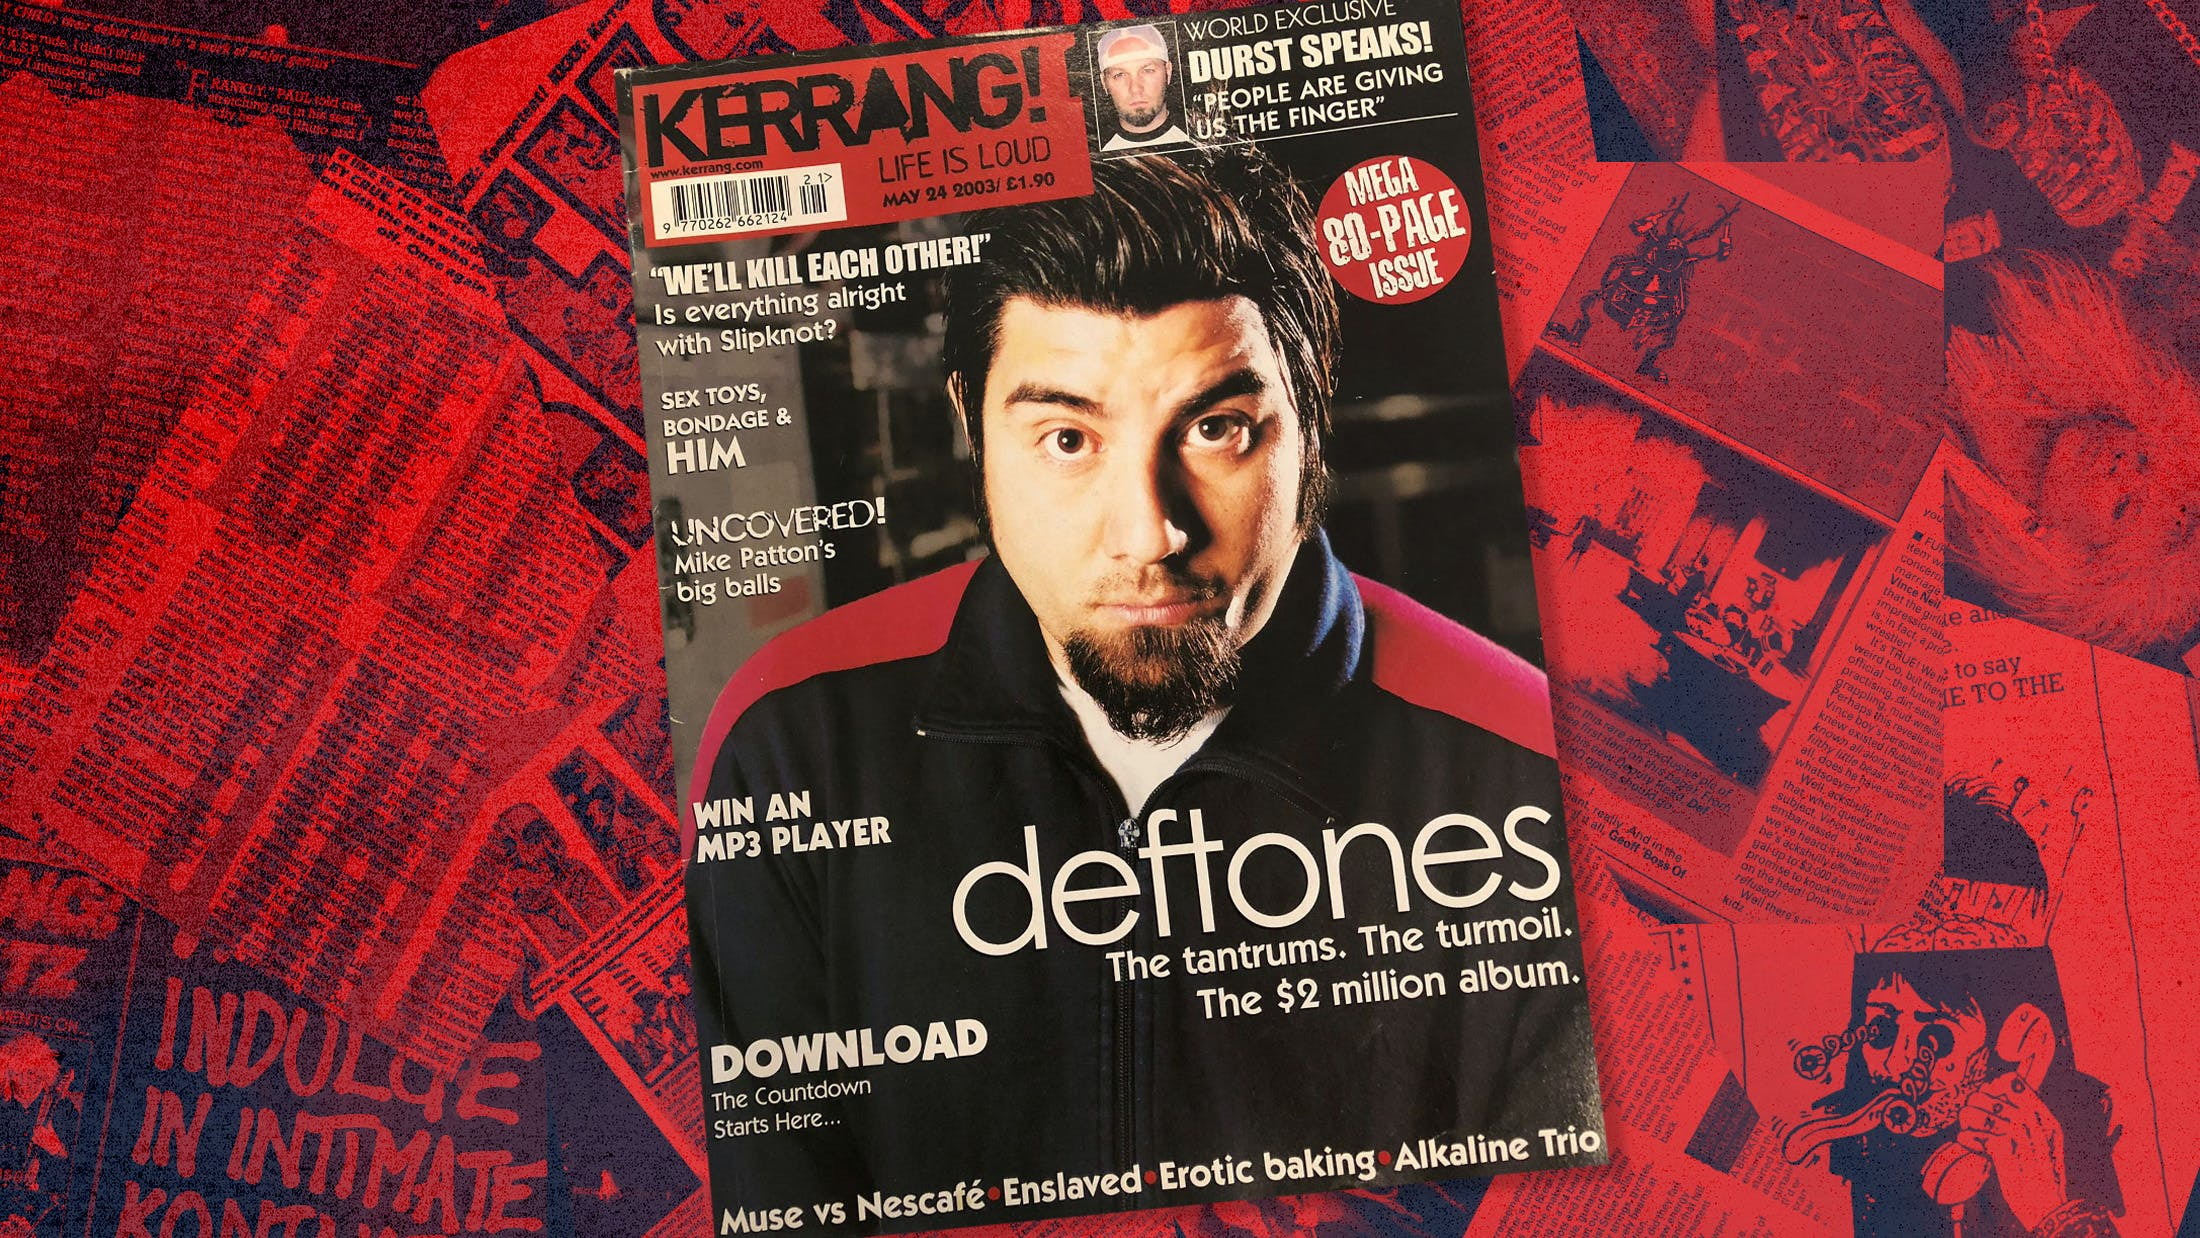 This Week In Kerrang! History: Issue 956, May 2003